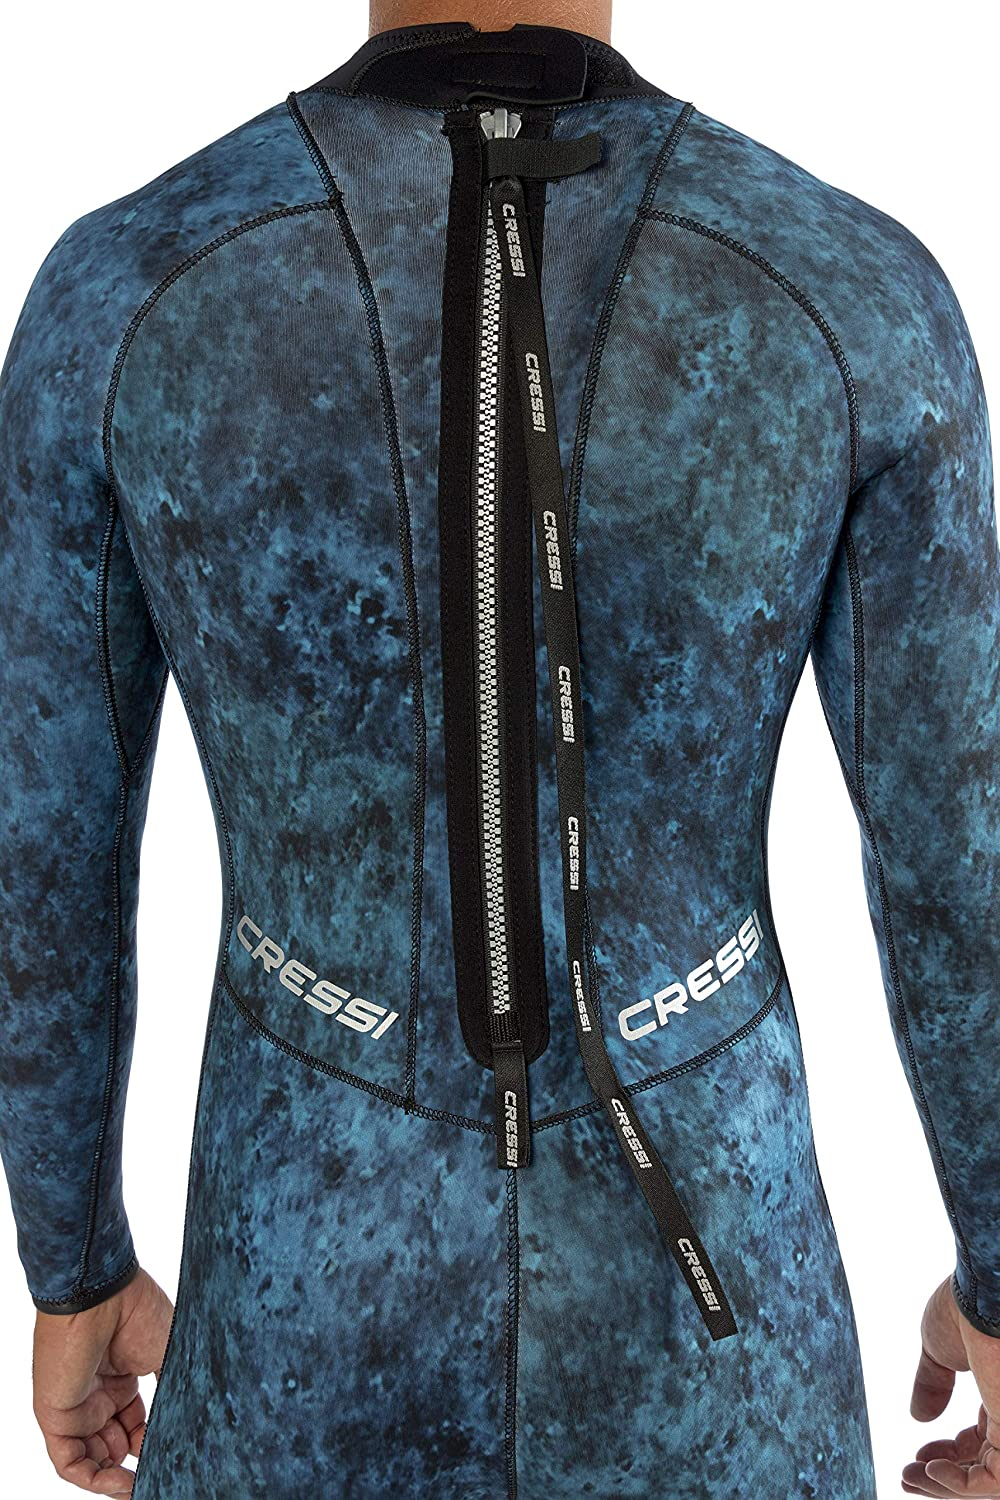 Blue /& Green Hunter 2.5 /& 3.5 mm Cressi Camouflage Wetsuit for Spearfishing Knee Protection Mimetic Pattern Loading Pad